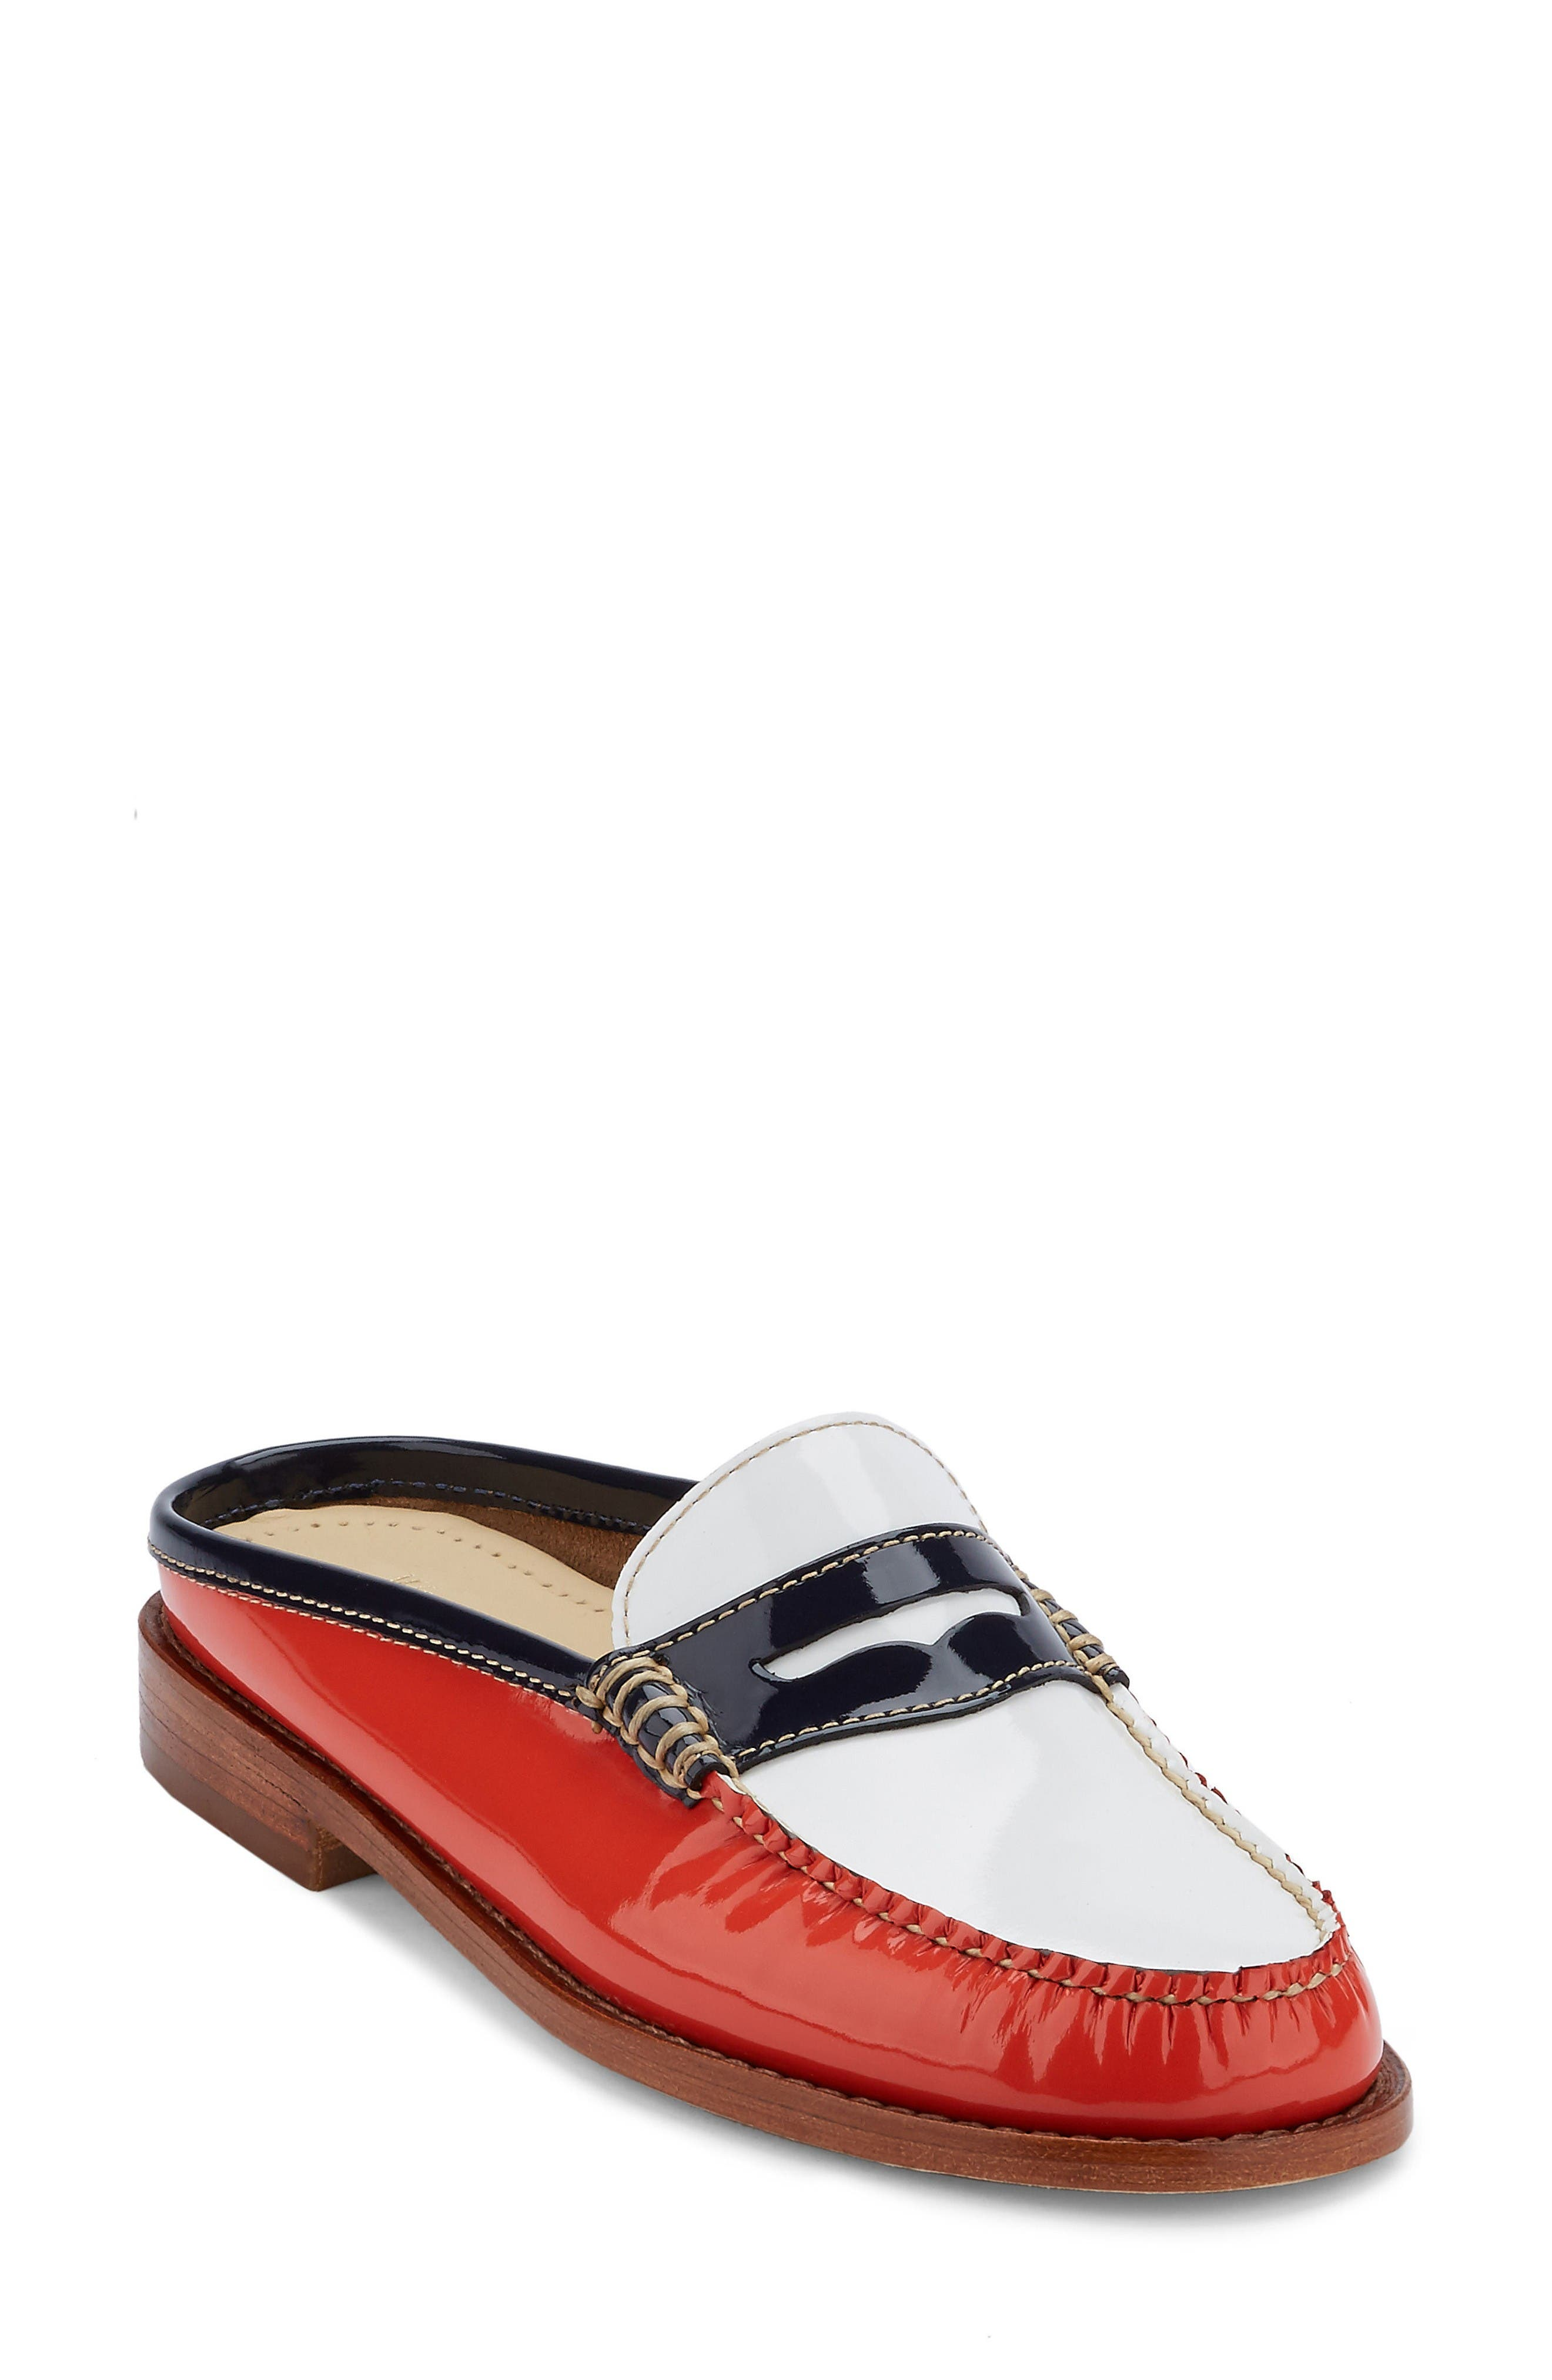 Wynn Loafer Mule,                         Main,                         color, Poppy/ White Leather